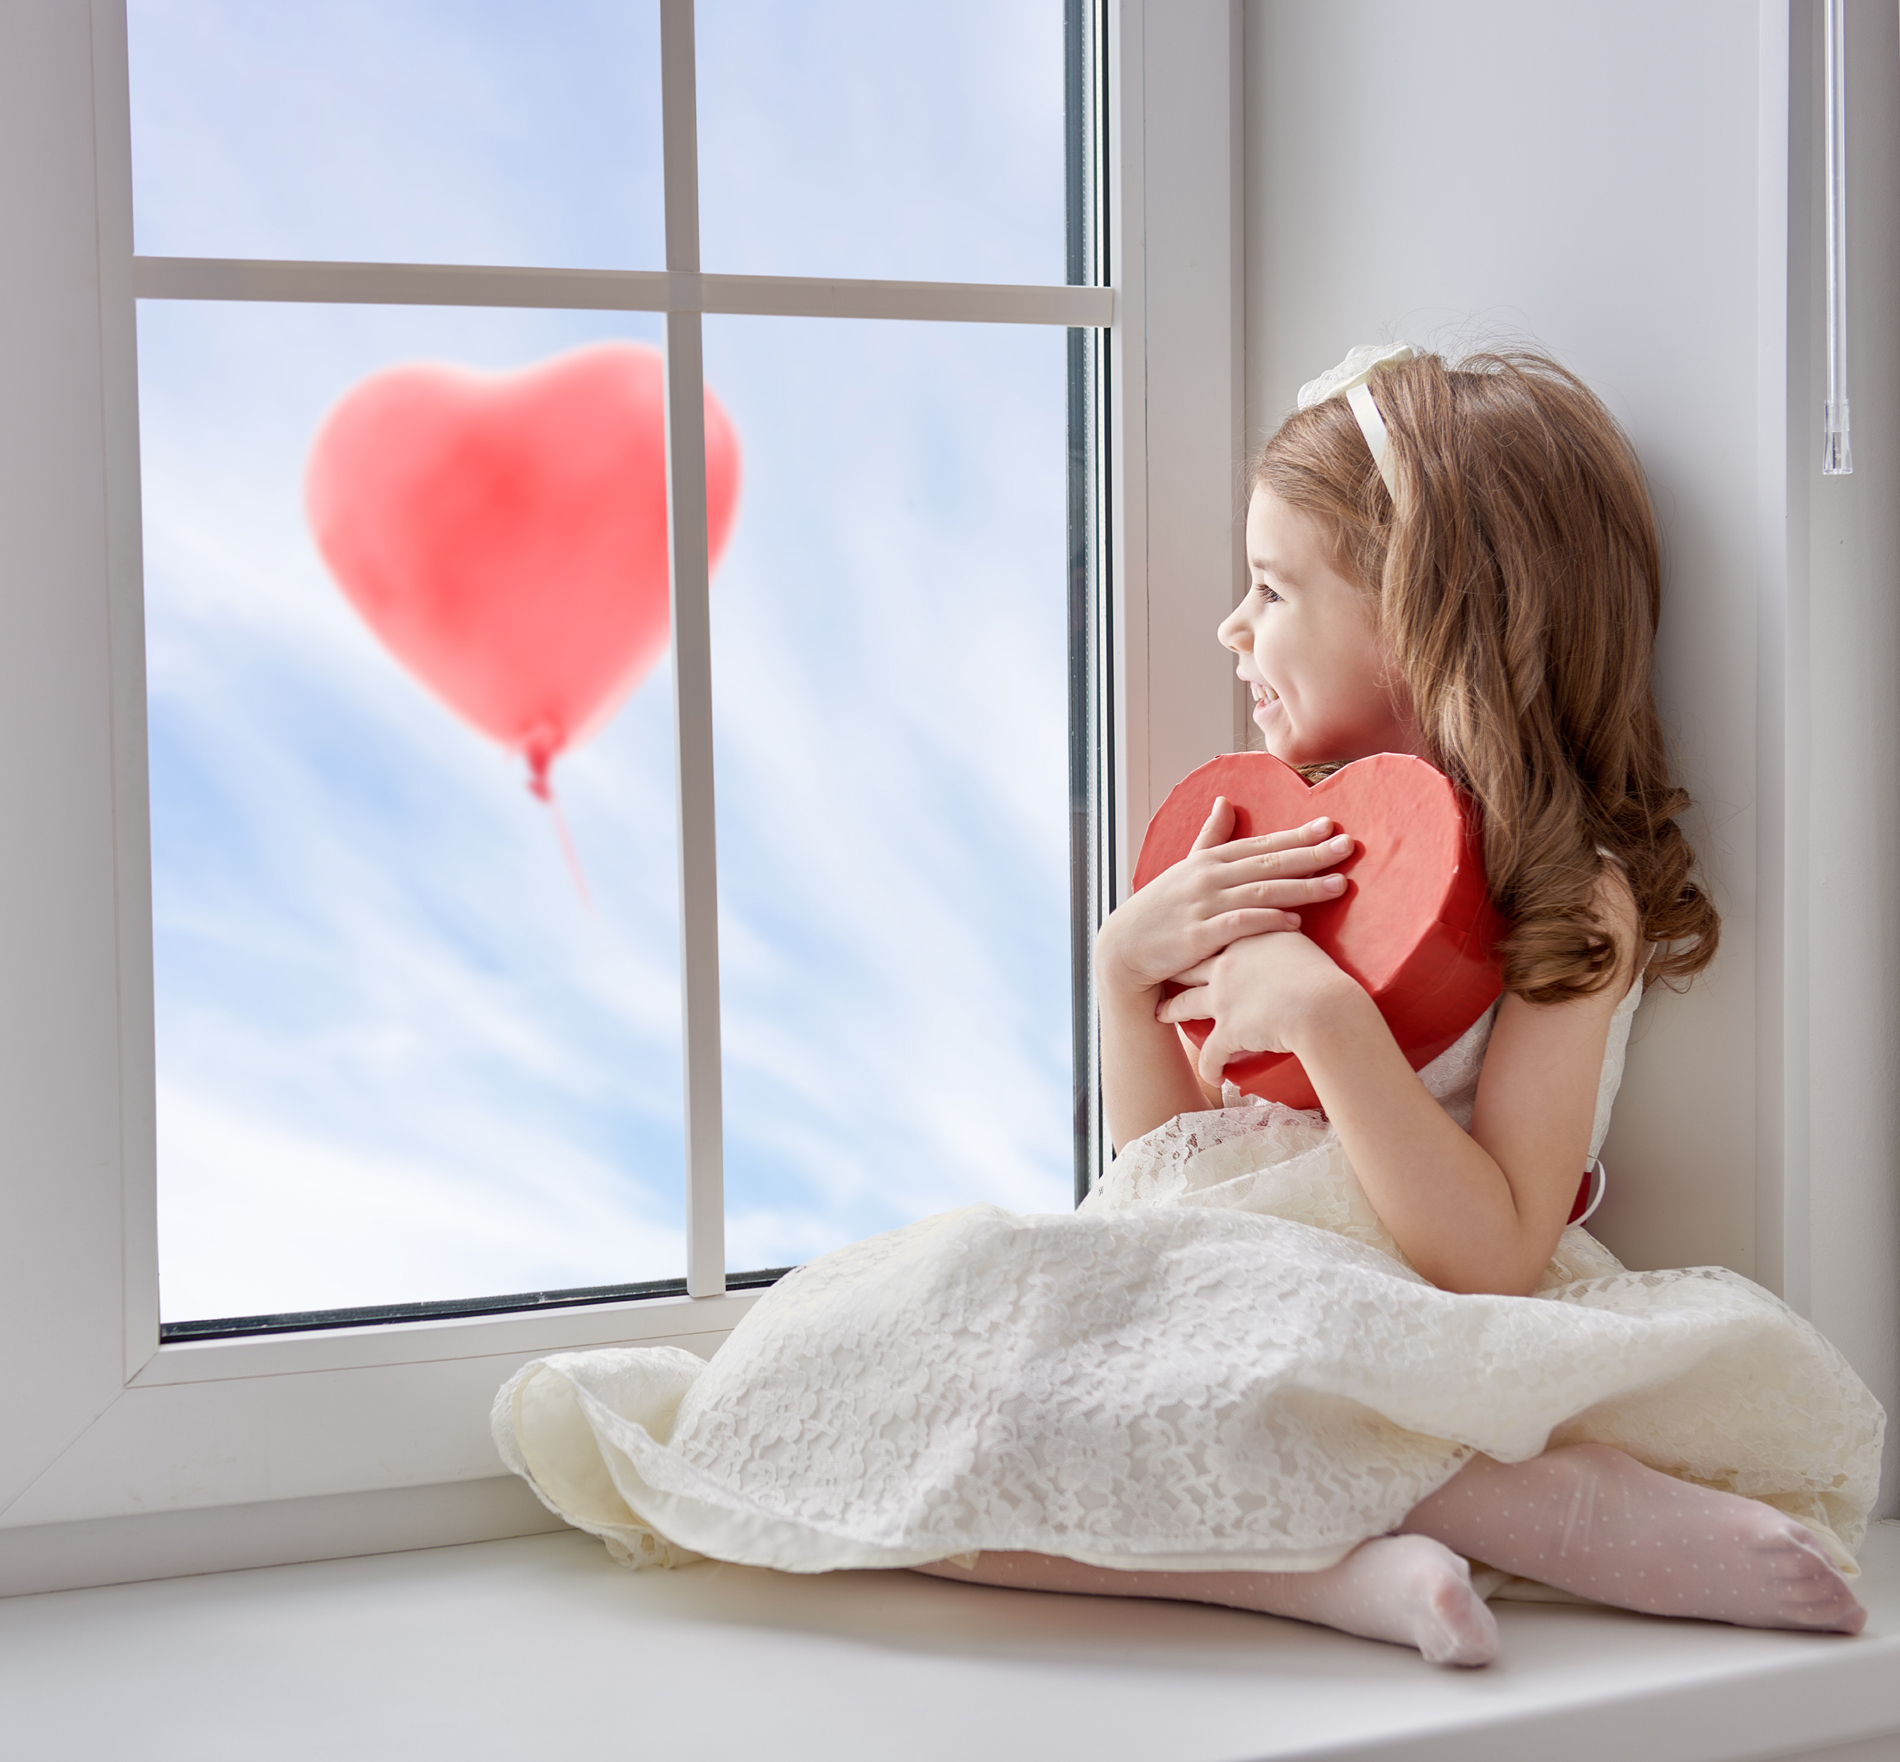 Little girl holding heart-shaped gift box 52776